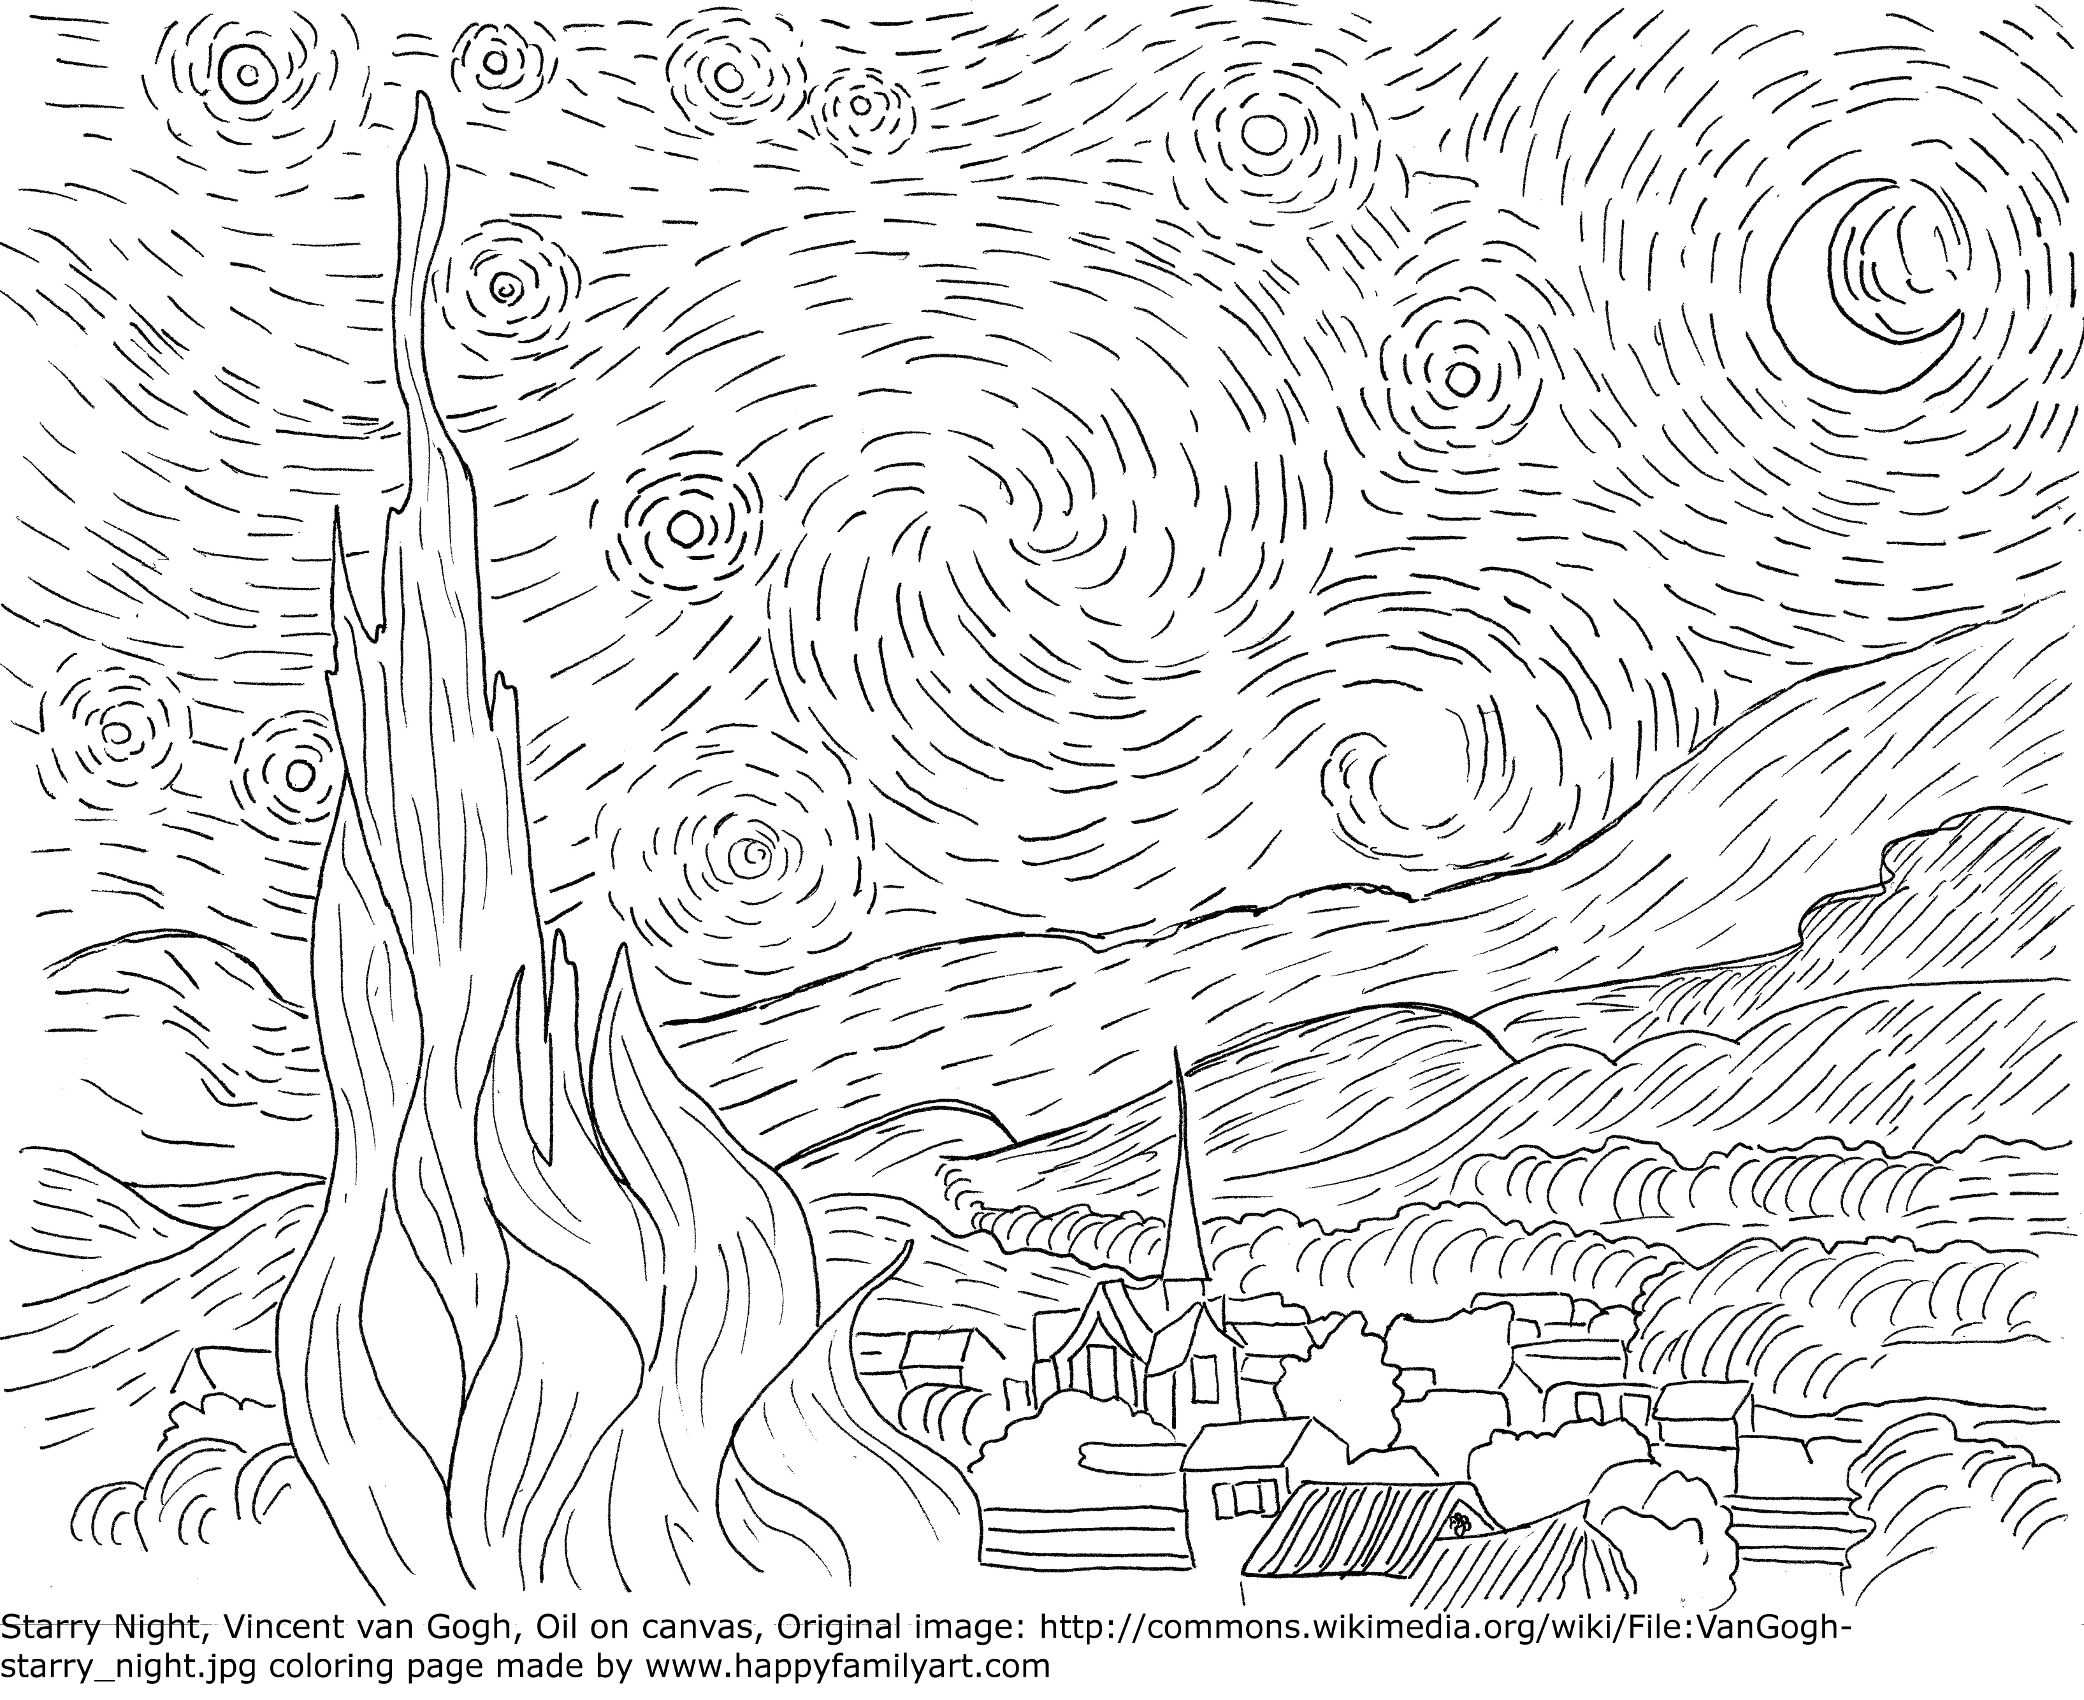 coloring pages van gough - photo#17